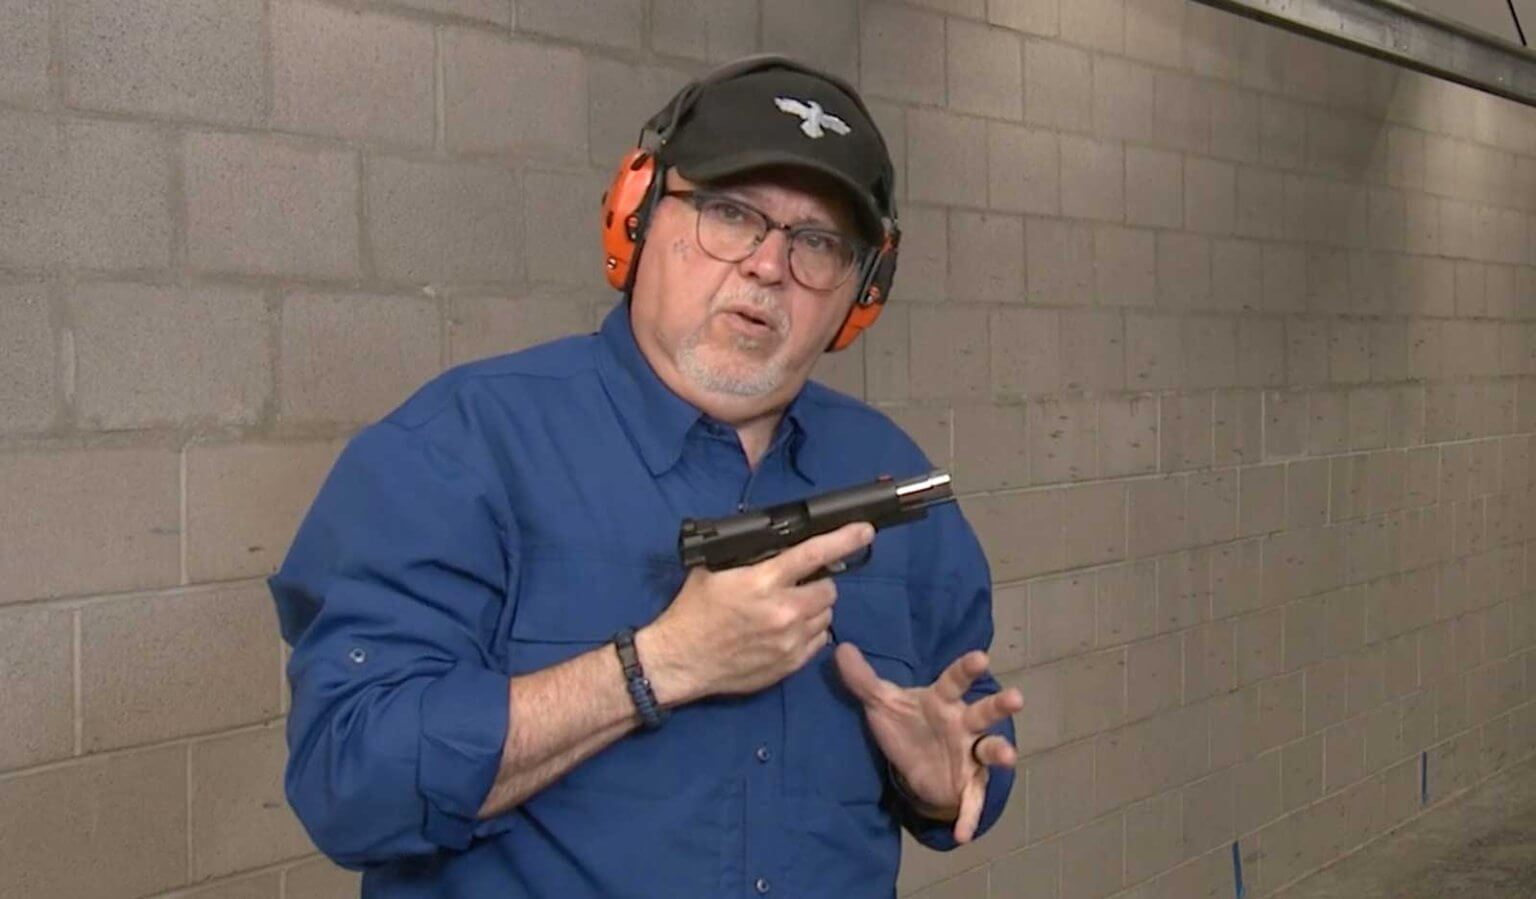 Shooting ammo to find the best defensive ammo for a compact 1911